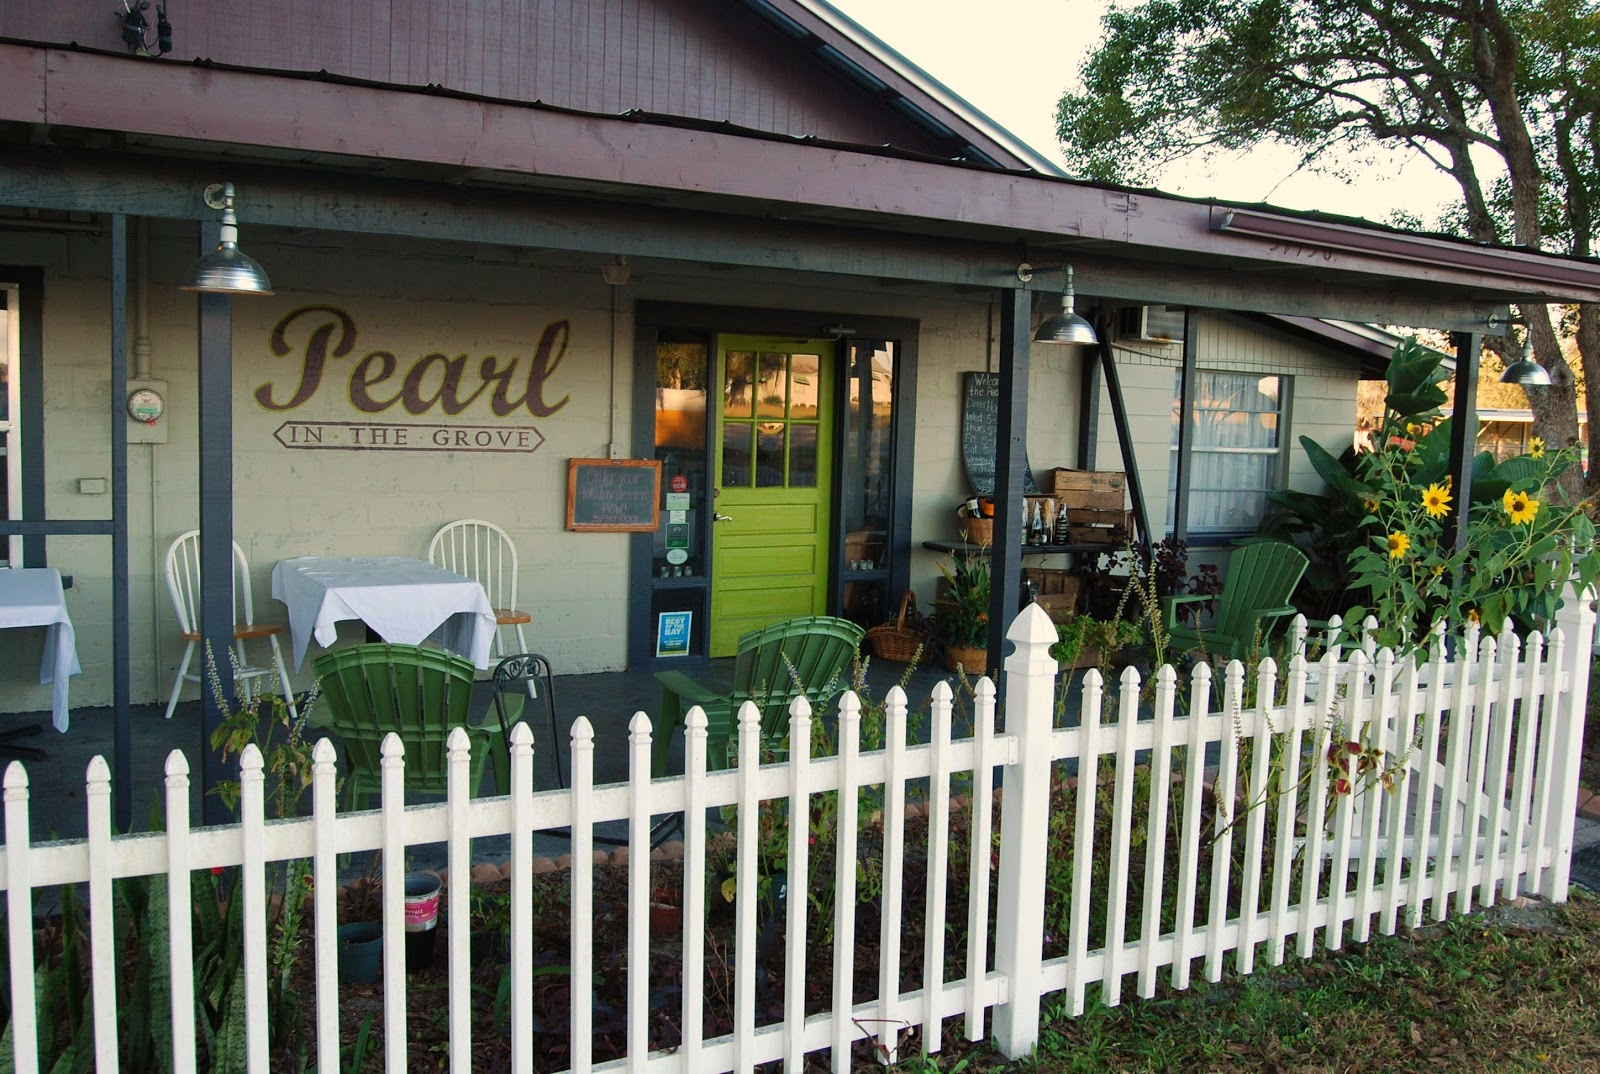 Outside View Of Pearl In The Grove Restaurant Dade City Fla Copyright 2017 By Helen A Lockey